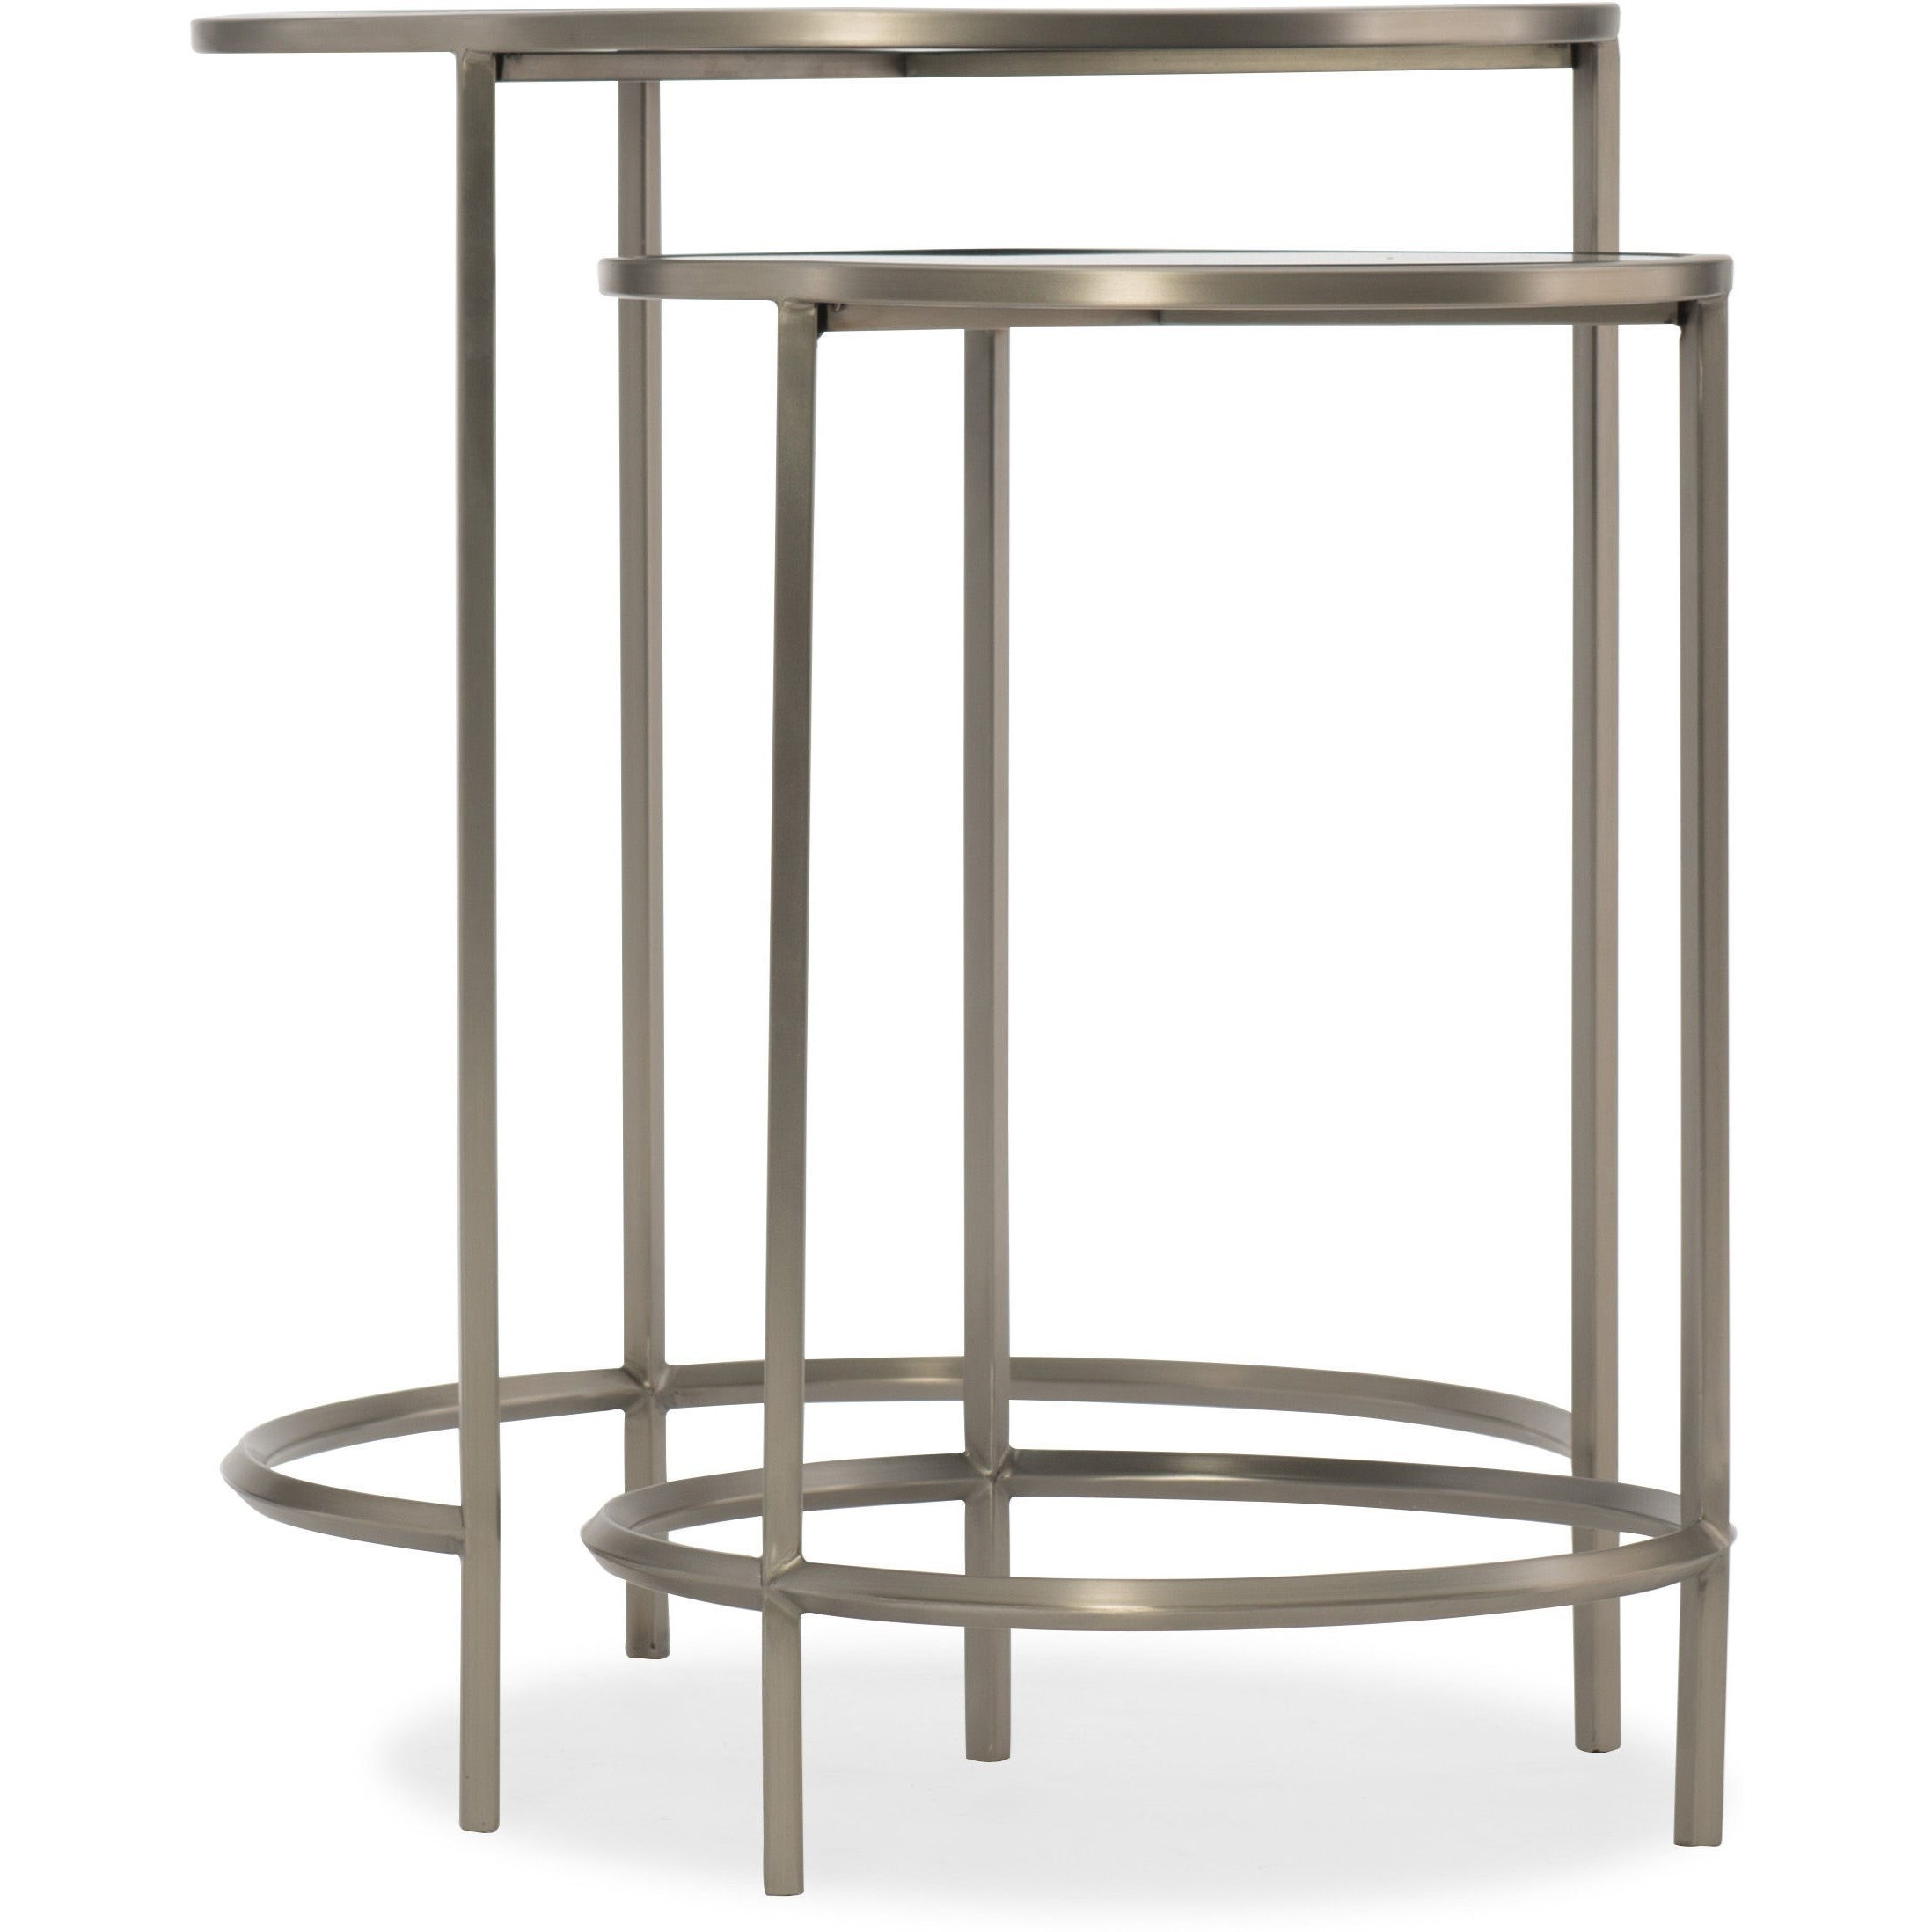 Living Room Accents Nesting Tables by Hooker Furniture at Powell's Furniture and Mattress